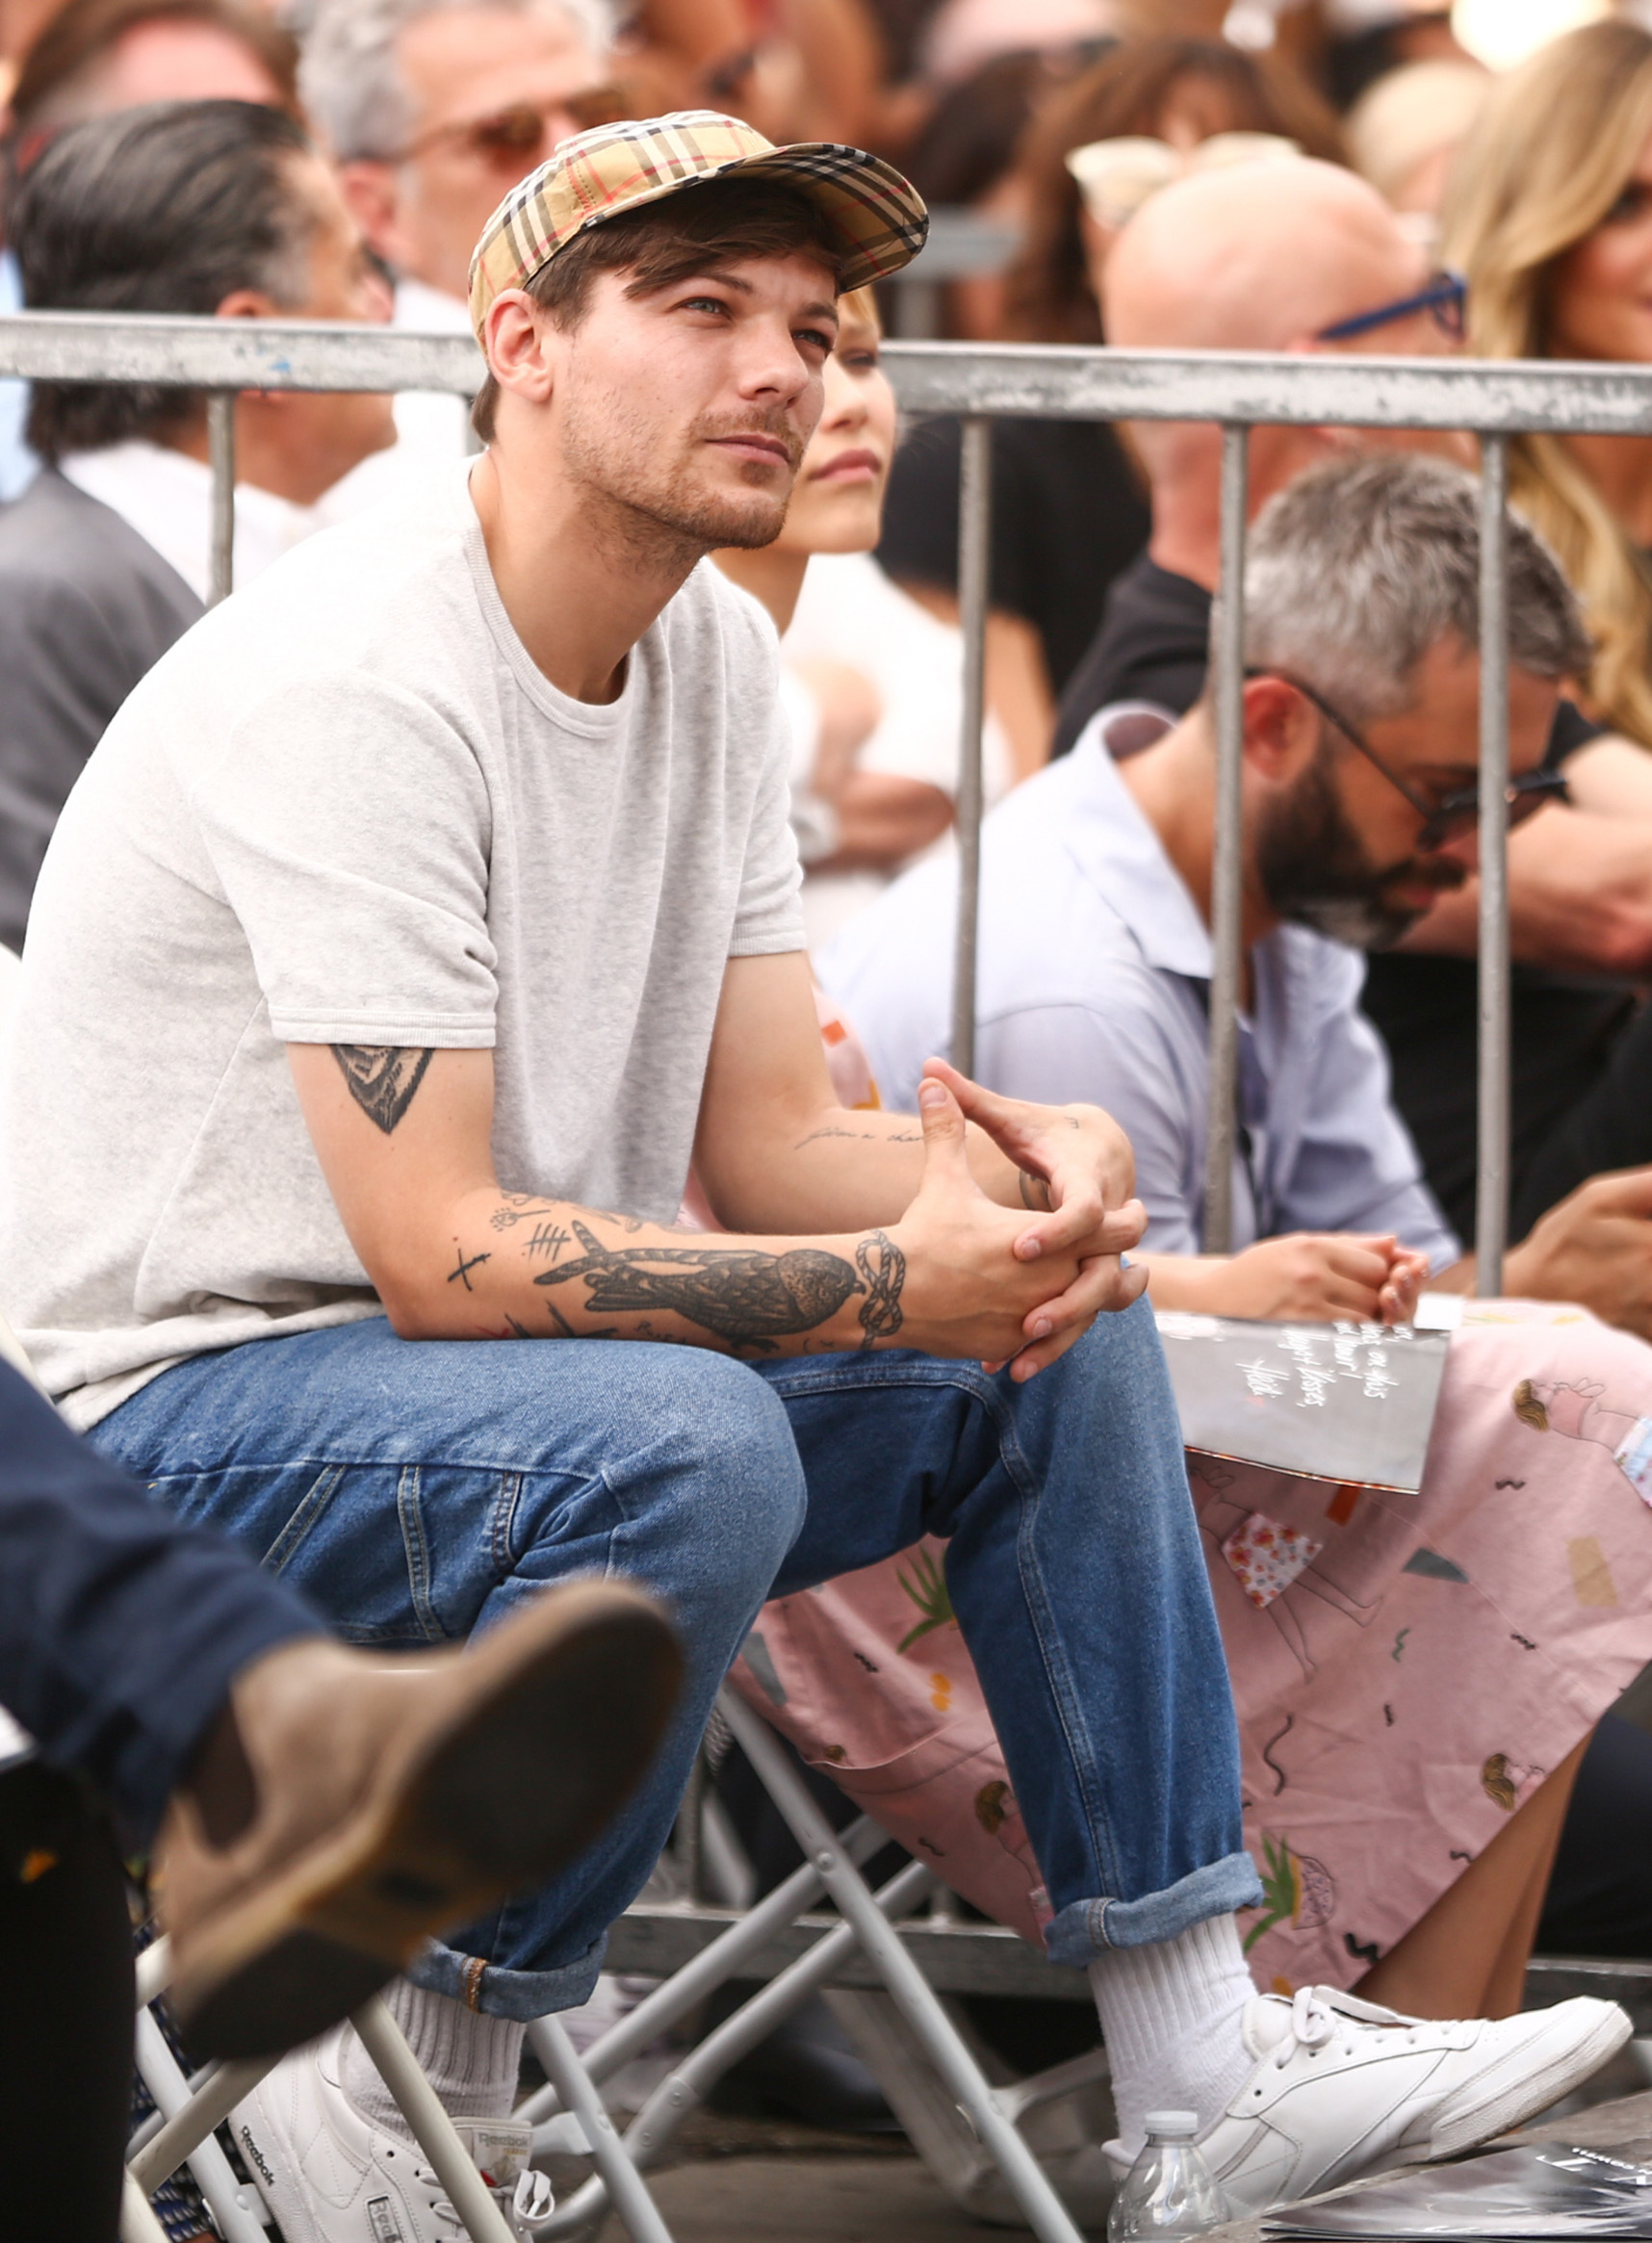 HOLLYWOOD, CA - AUGUST 22:  Louis Tomlinson attends a ceremony honoring Simon Cowell with a star on the Hollywood Walk of Fame on August 22, 2018 in Hollywood, California.  (Photo by Rich Fury/Getty Images)